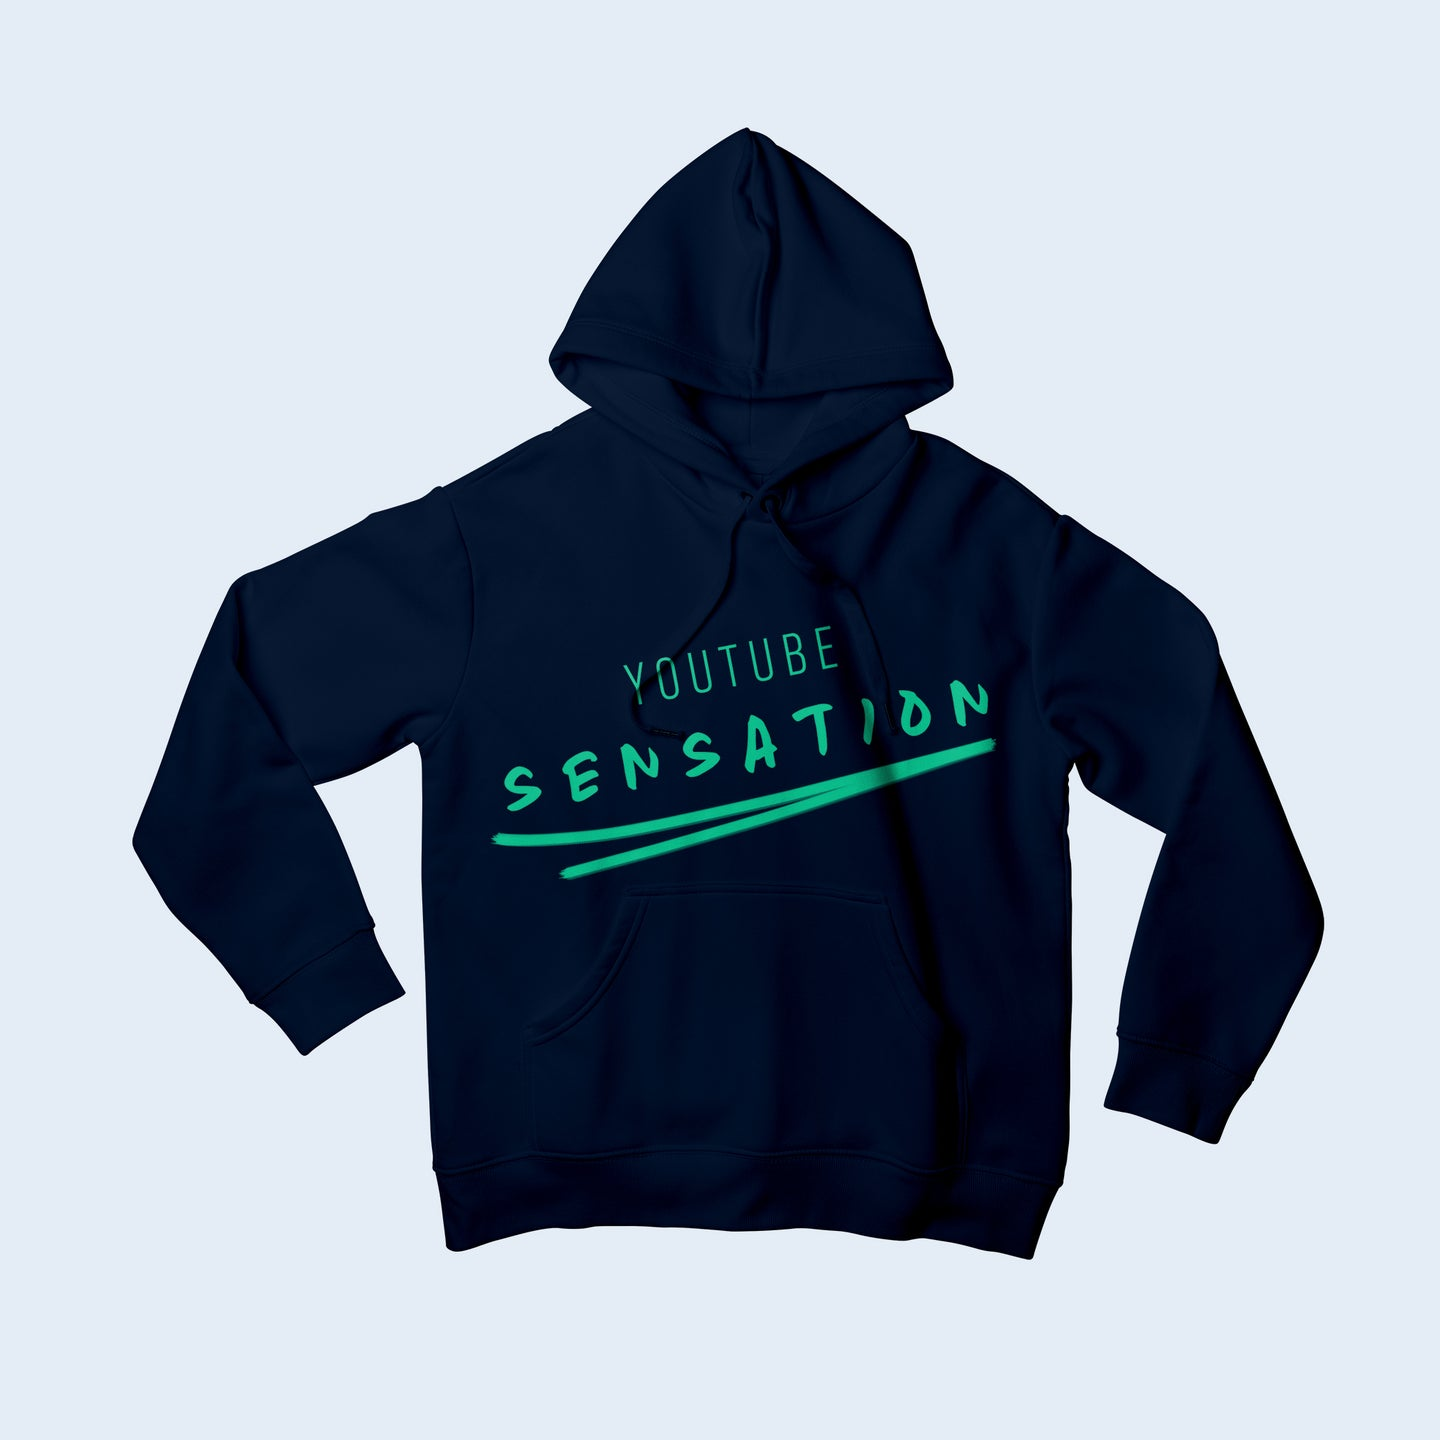 YouTube Sensation Hoodie - Adult